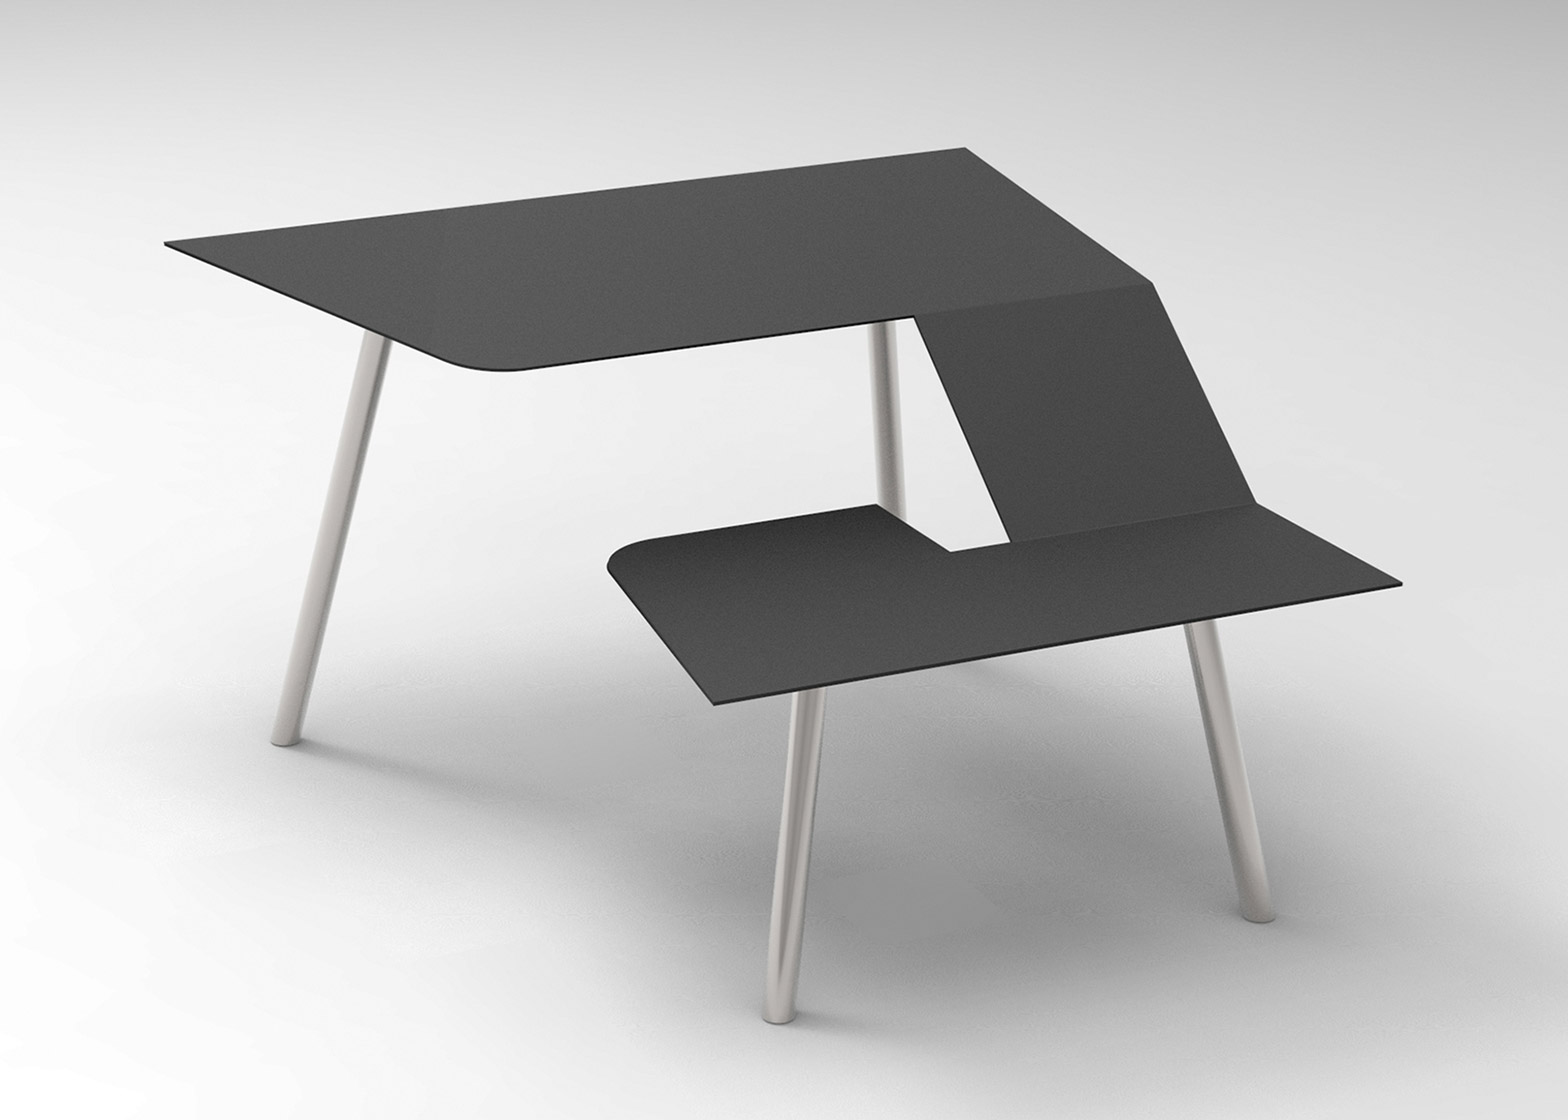 Frans Willigers addresses useless work furniture with